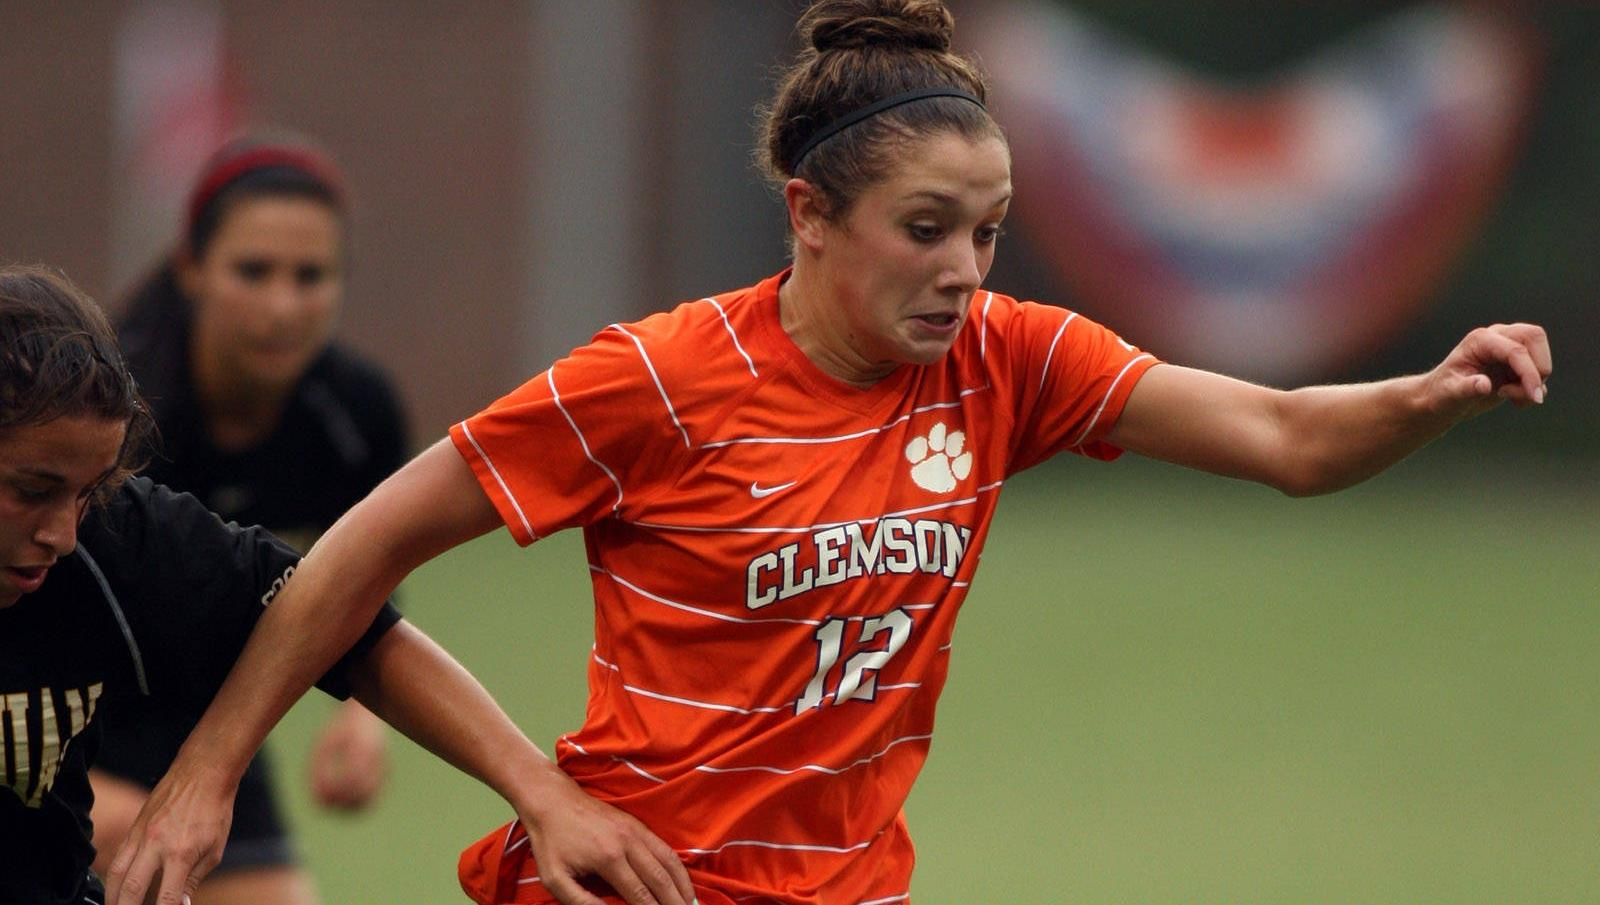 Clemson Women's Soccer Team to Face South Carolina in Columbia Saturday Night